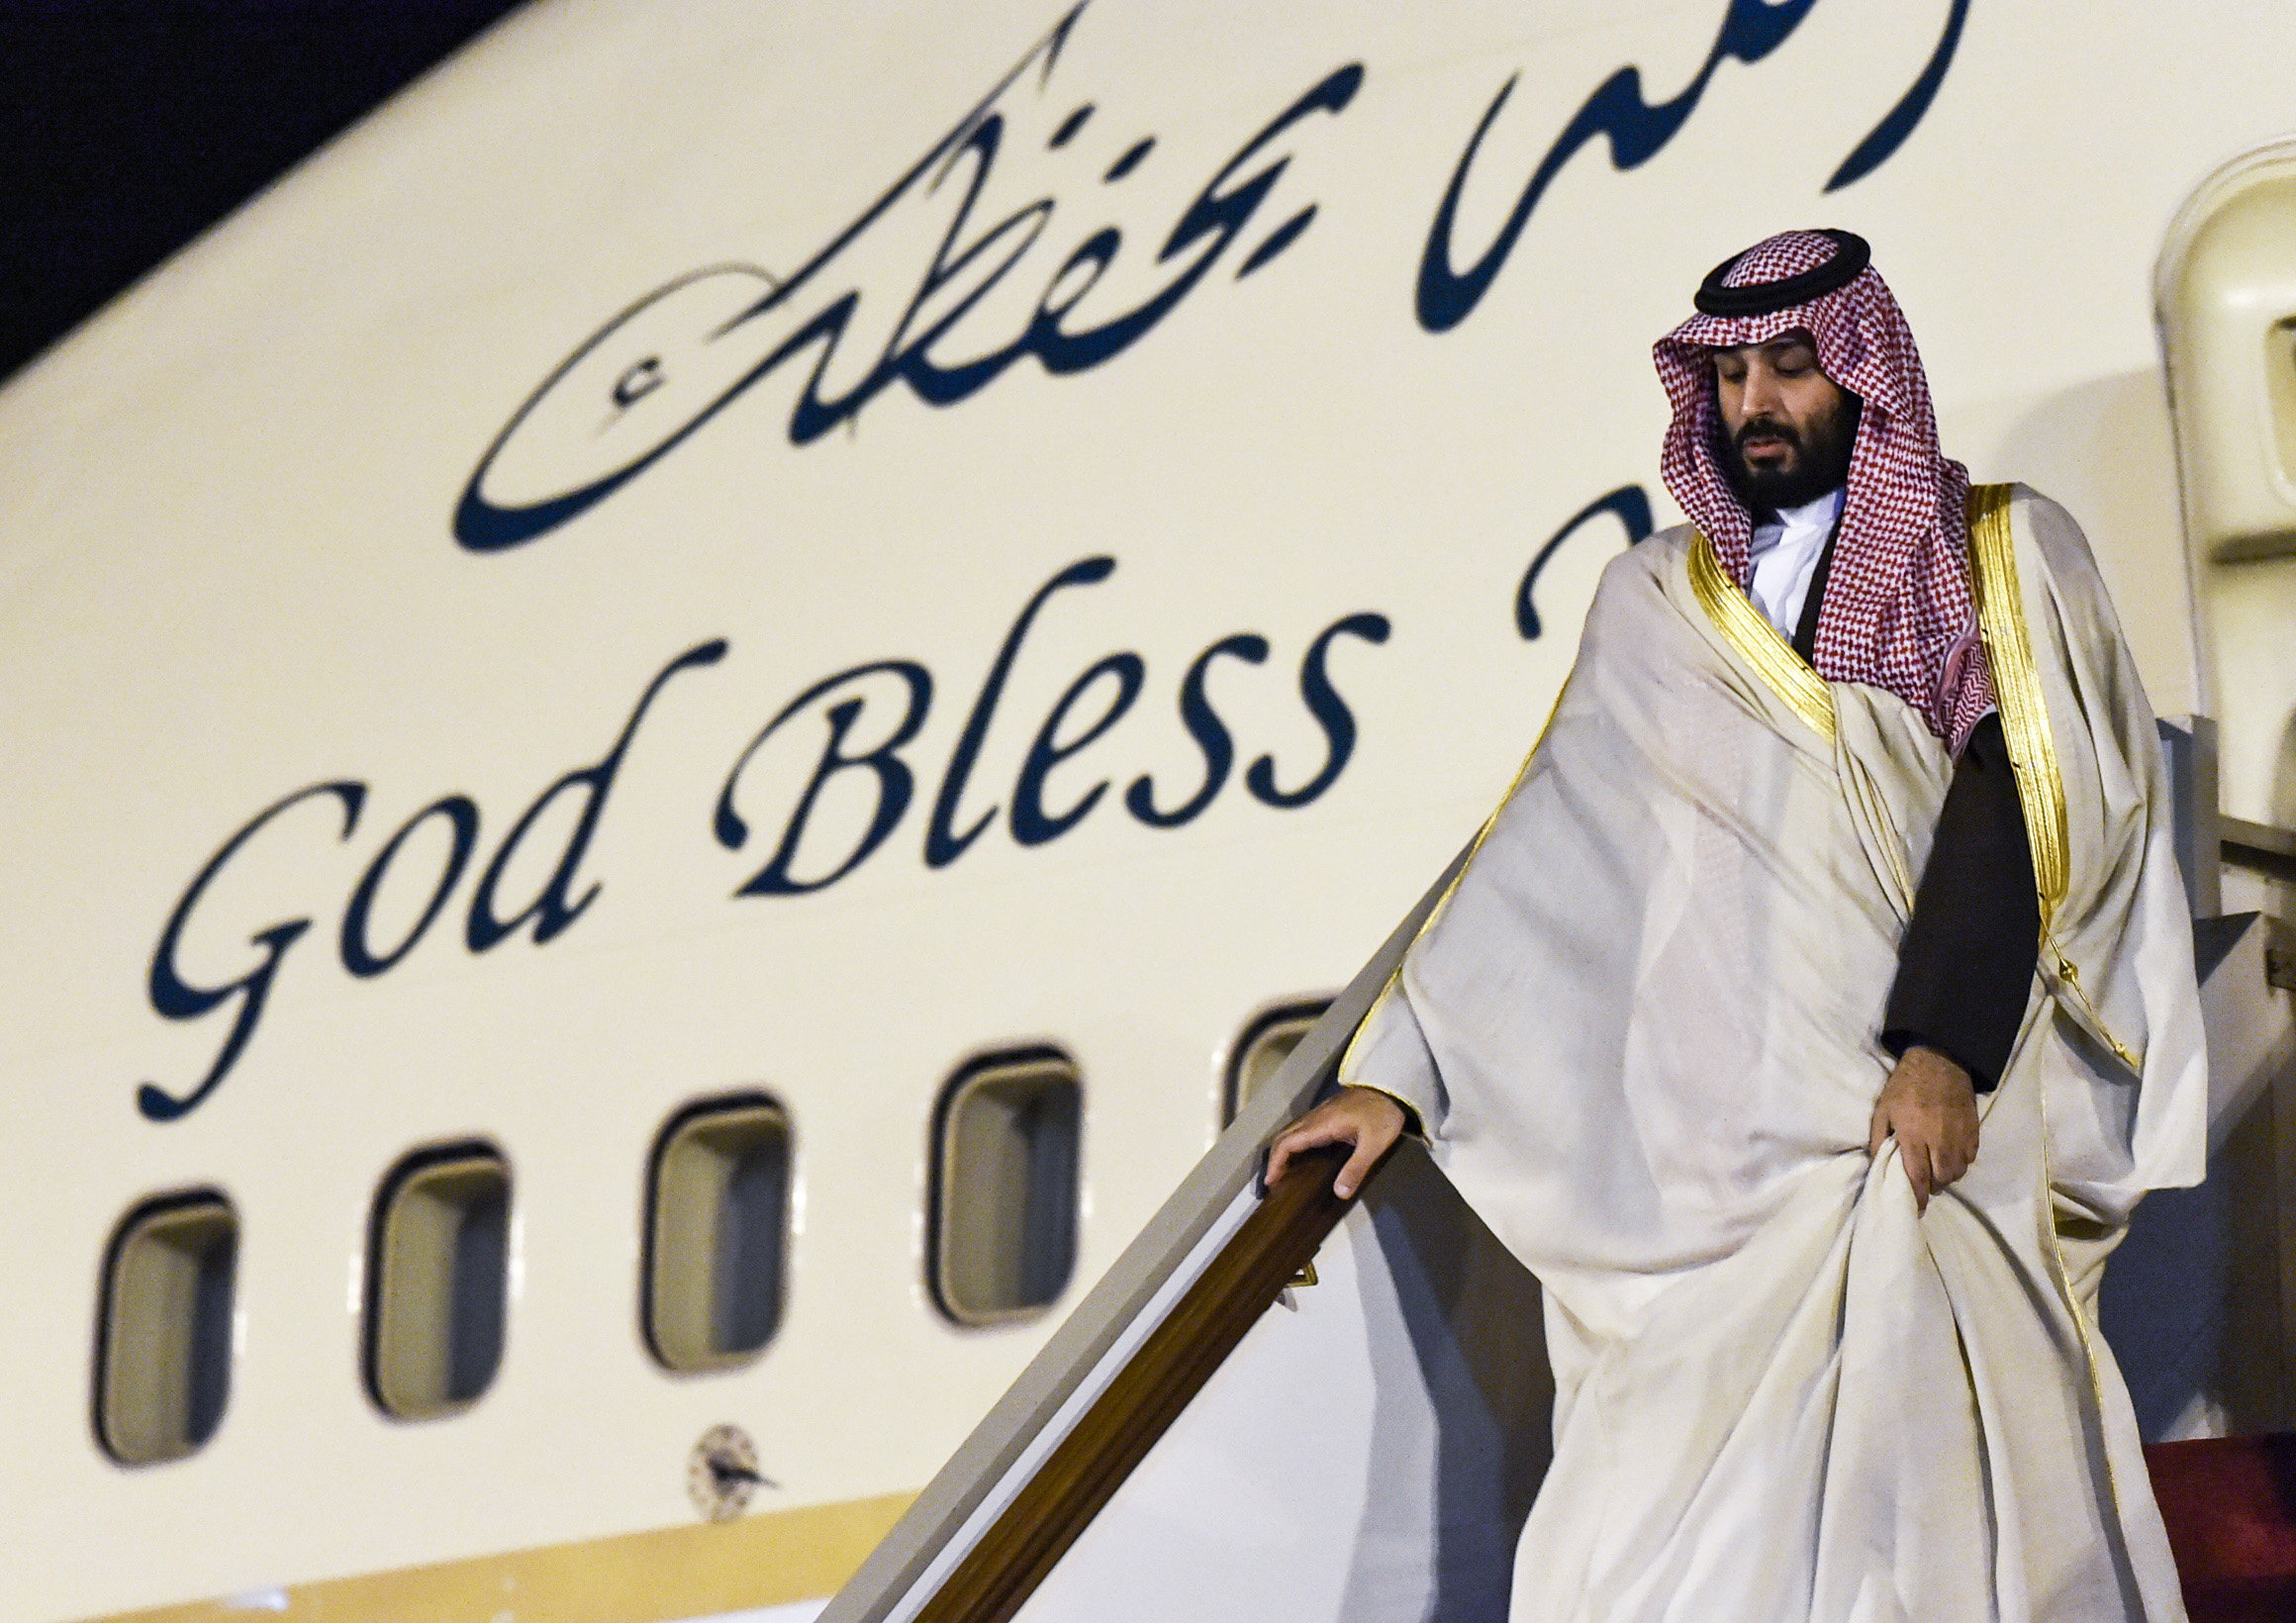 Saudi Crown Prince Mohammed bin Salman descends from his plane as he arrives at Algiers International Airport, southeast of the capital Algiers on December 2, 2018. (RYAD KRAMDI/AFP/Getty Images)